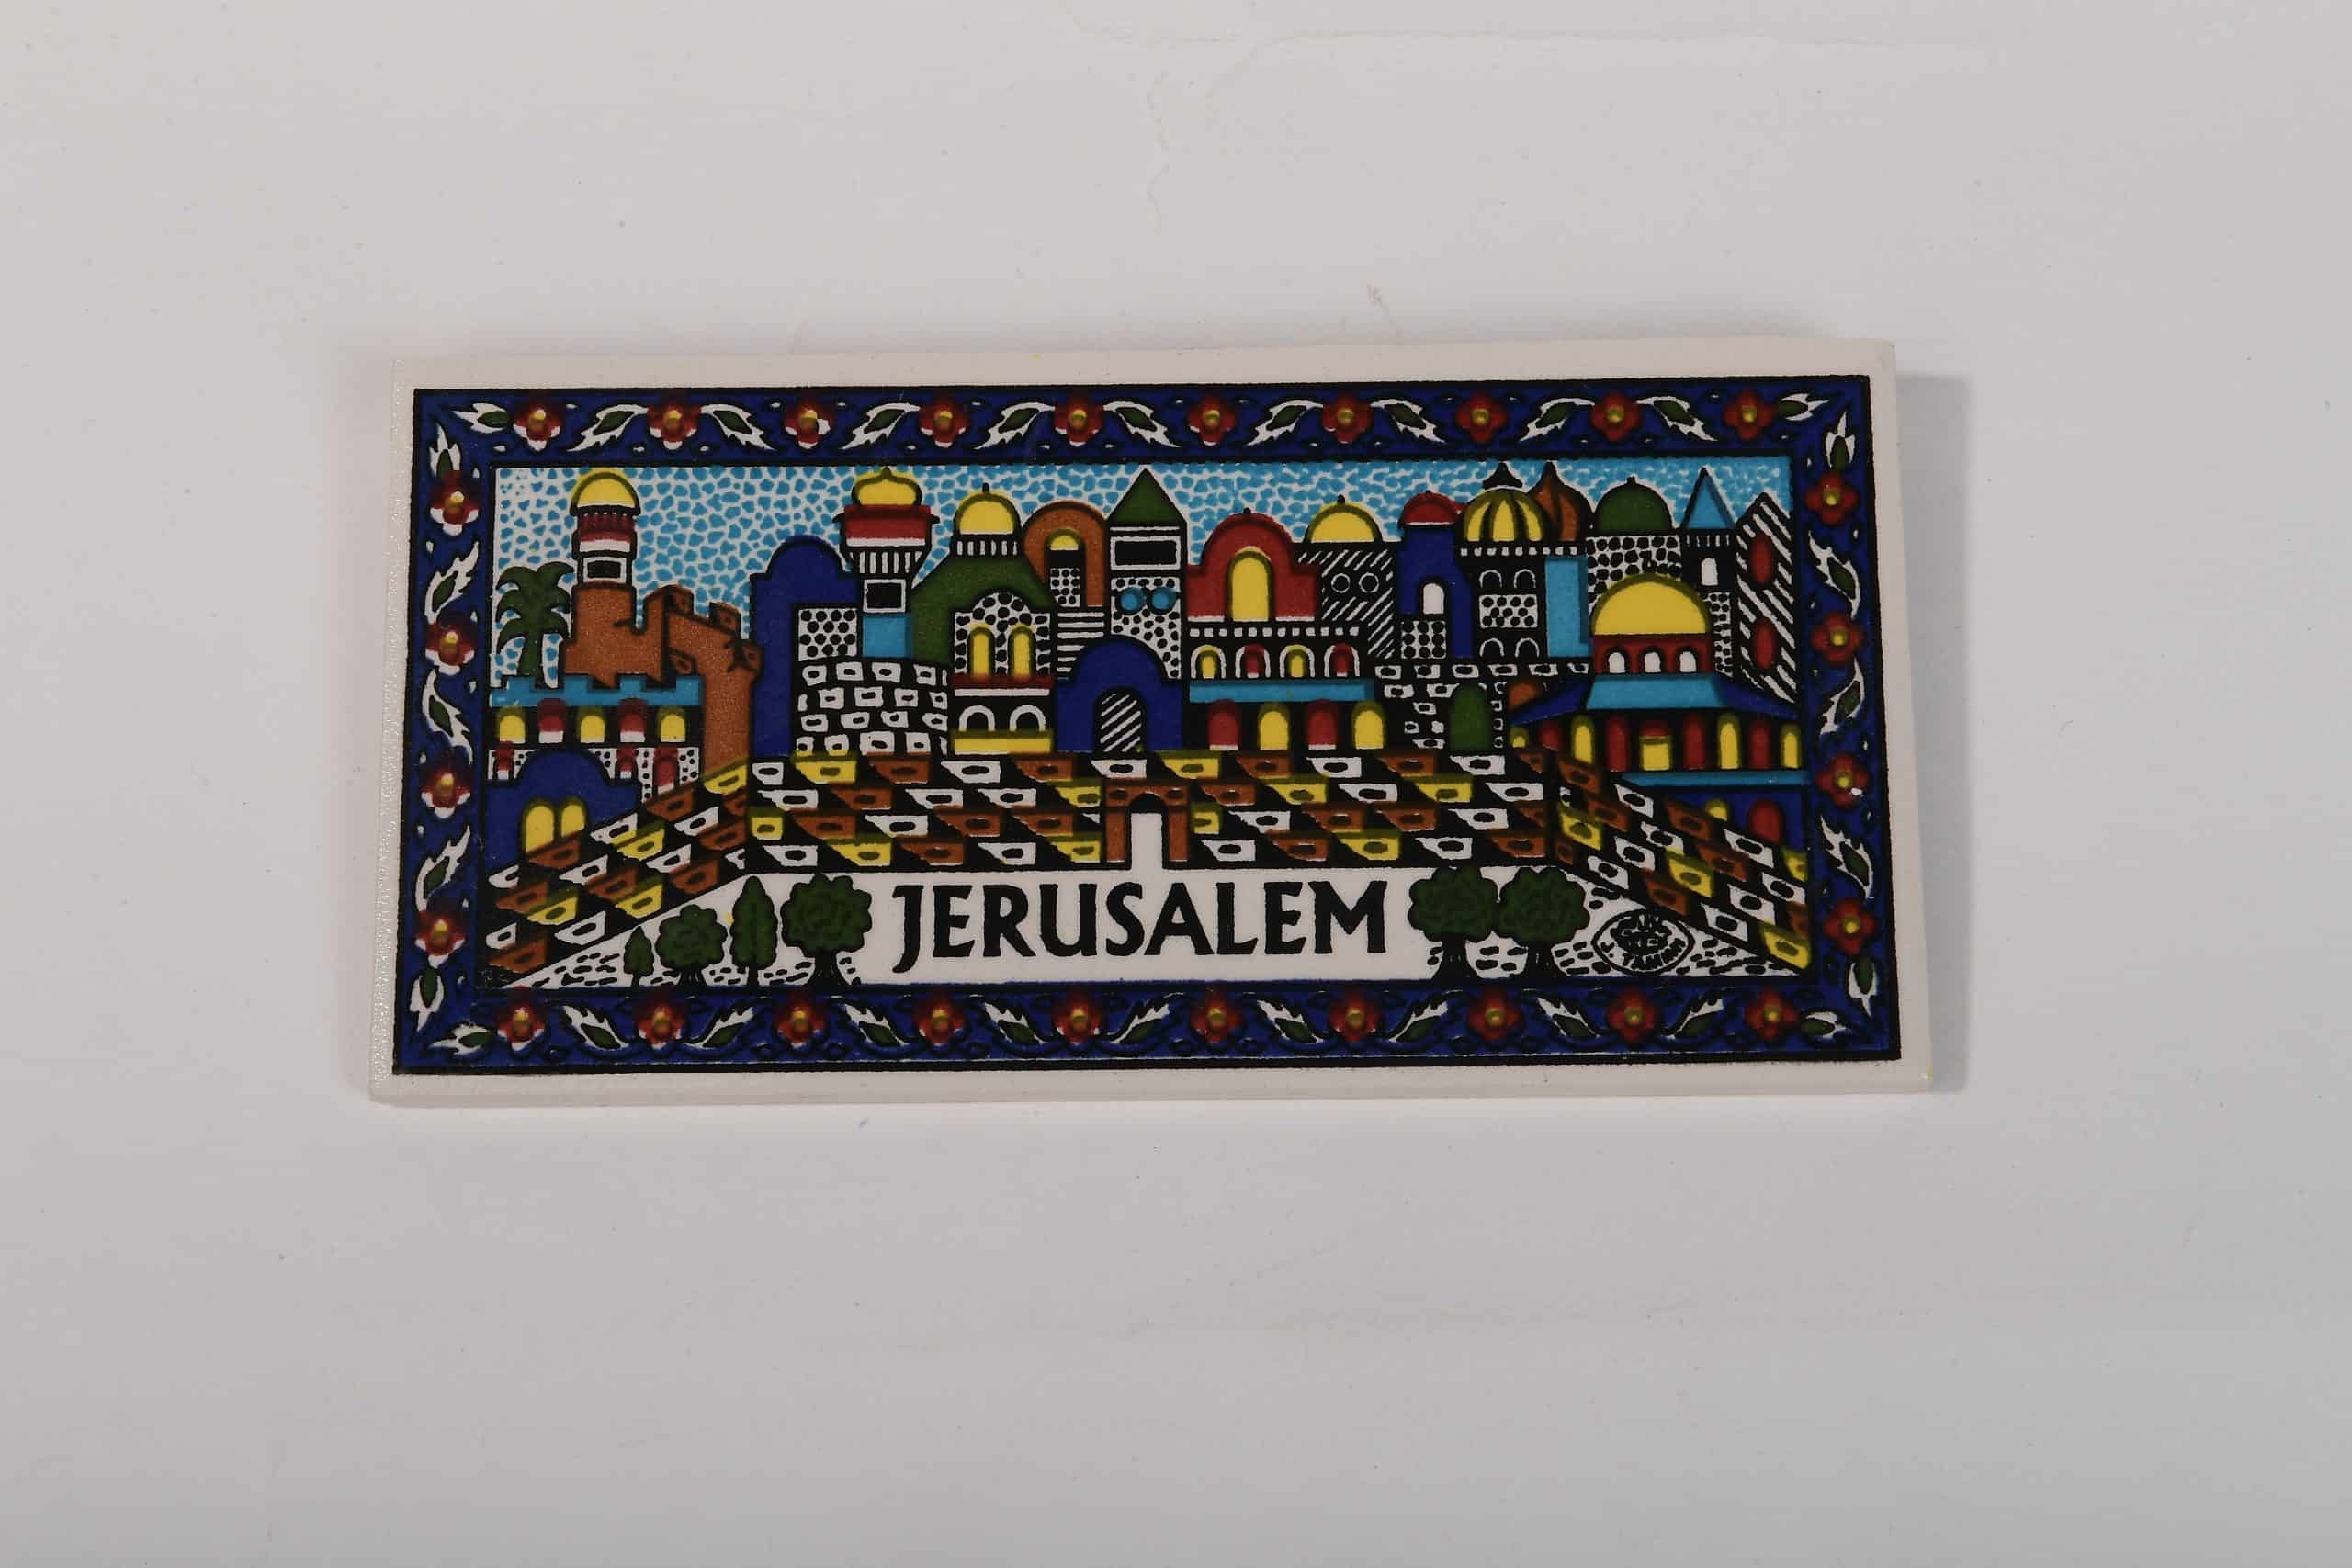 Armenian Ceramic Hanging Tile with Jerusalem Wall and the Hand-Painted Panorama